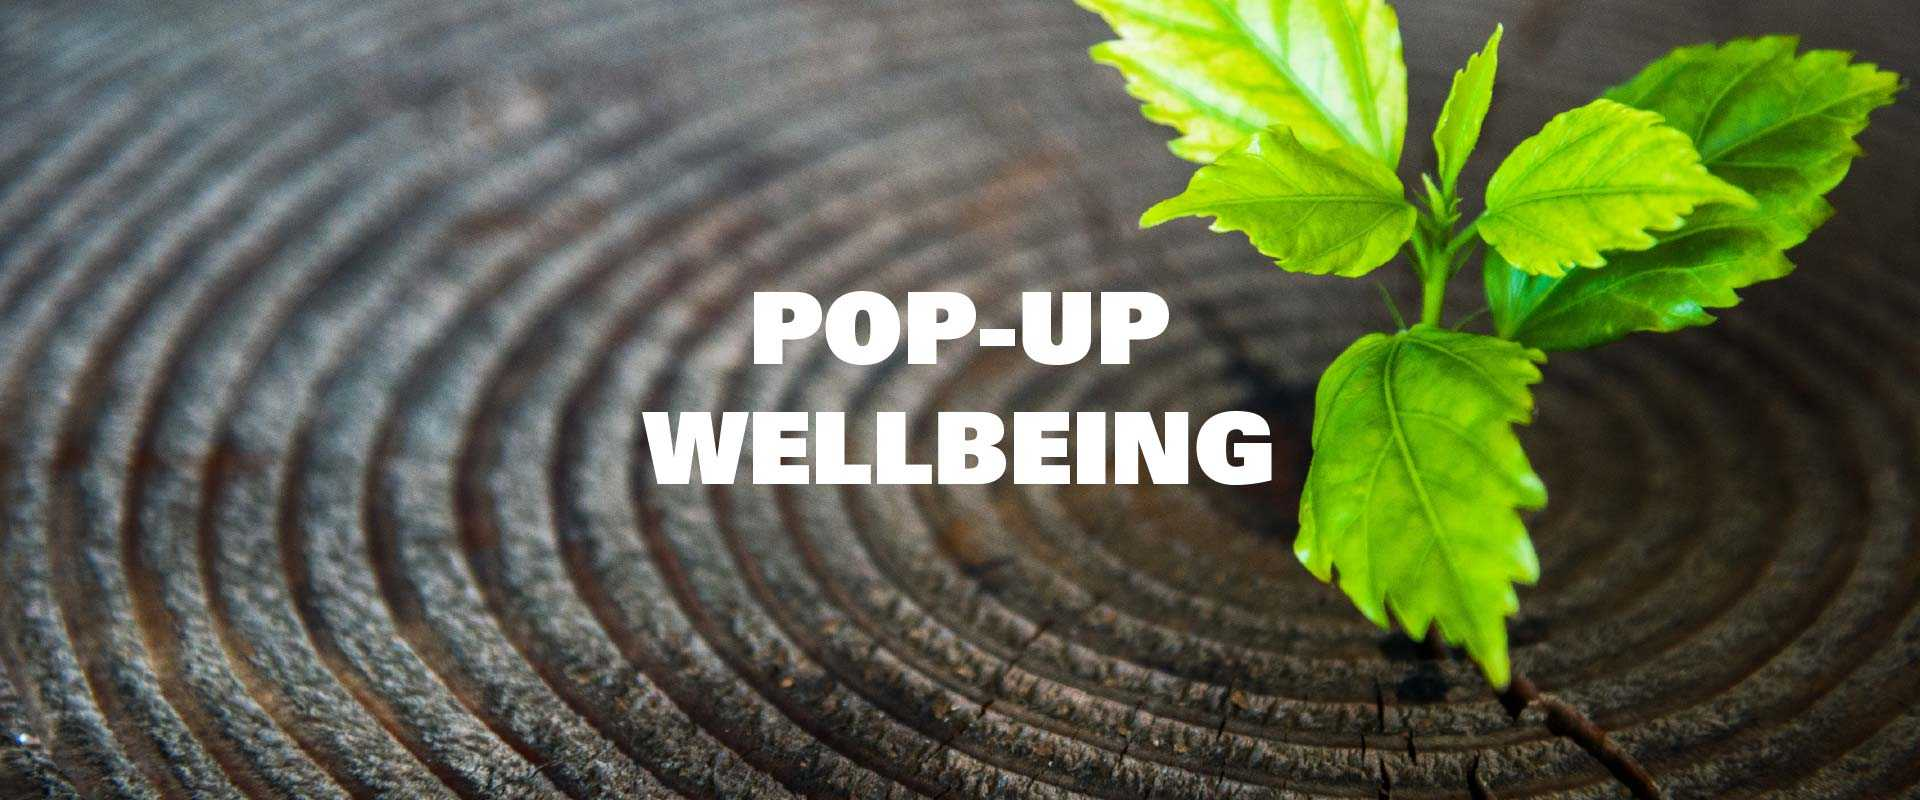 New-Leaf-Pop-Up-Wellbeing-Banner-v1